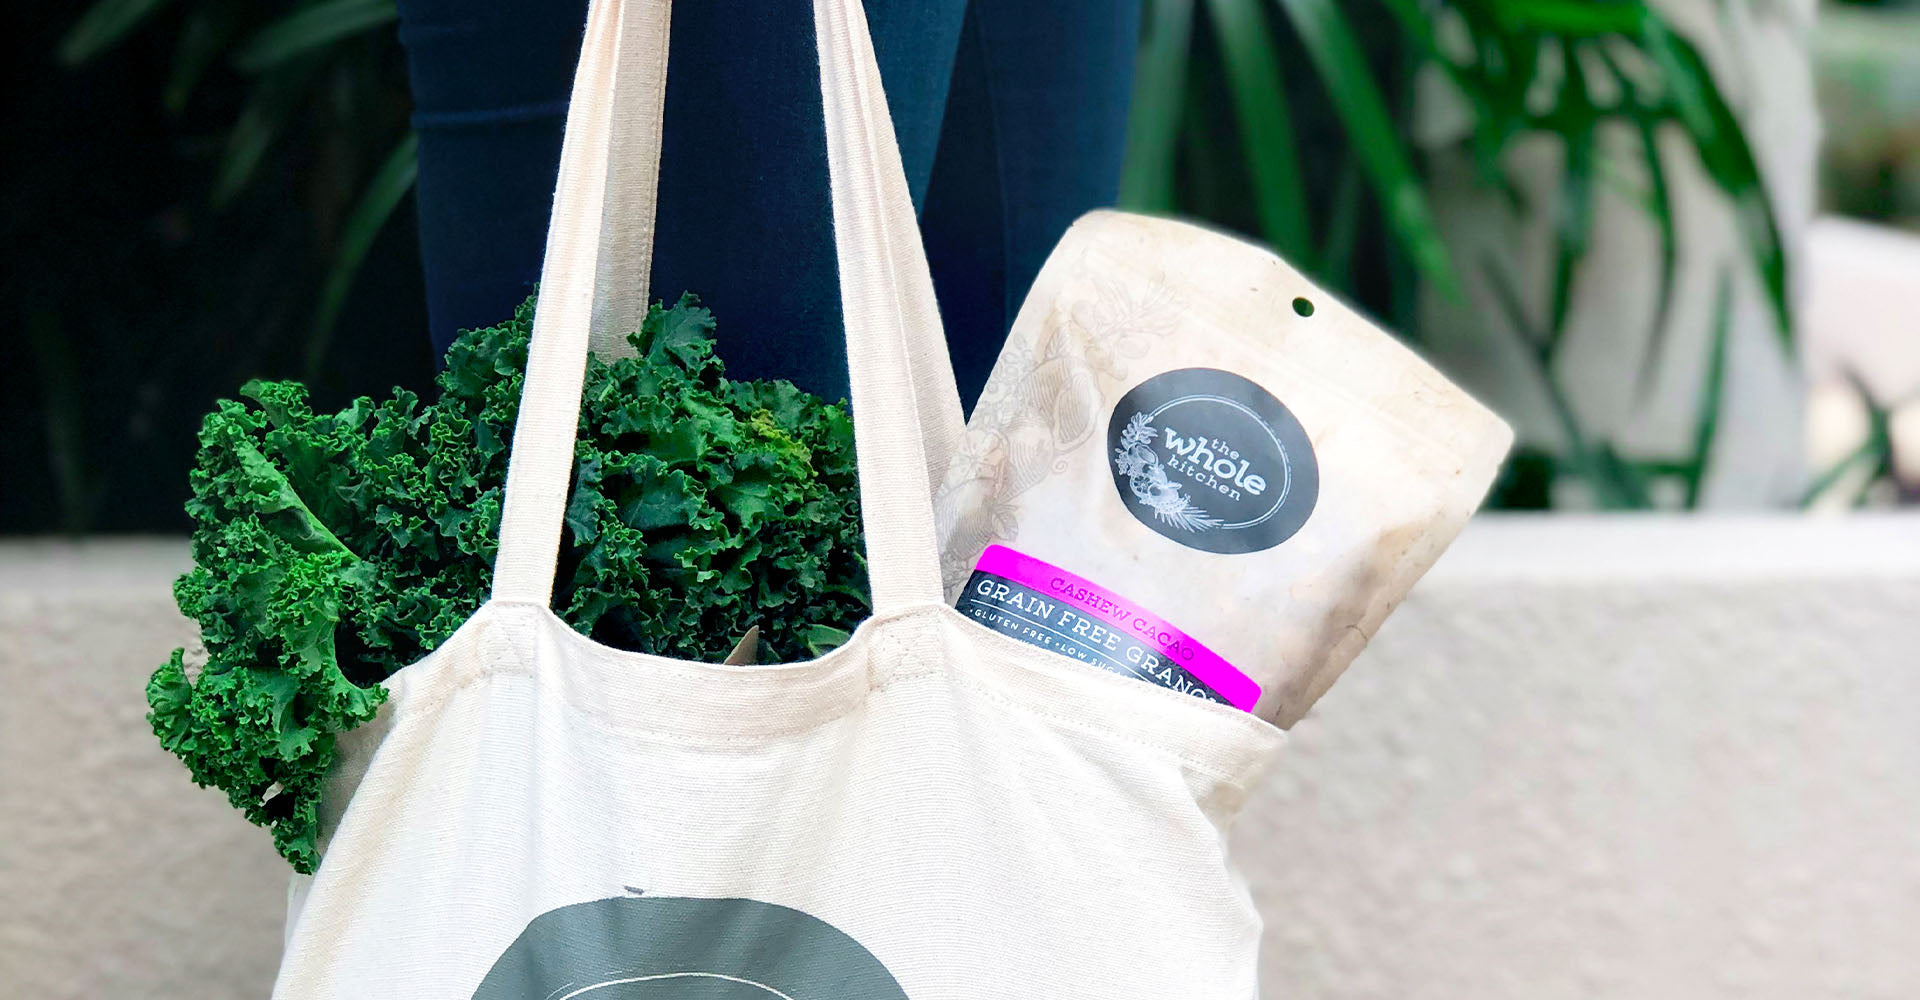 Tote bag full of greens and The Whole Kitchen granola